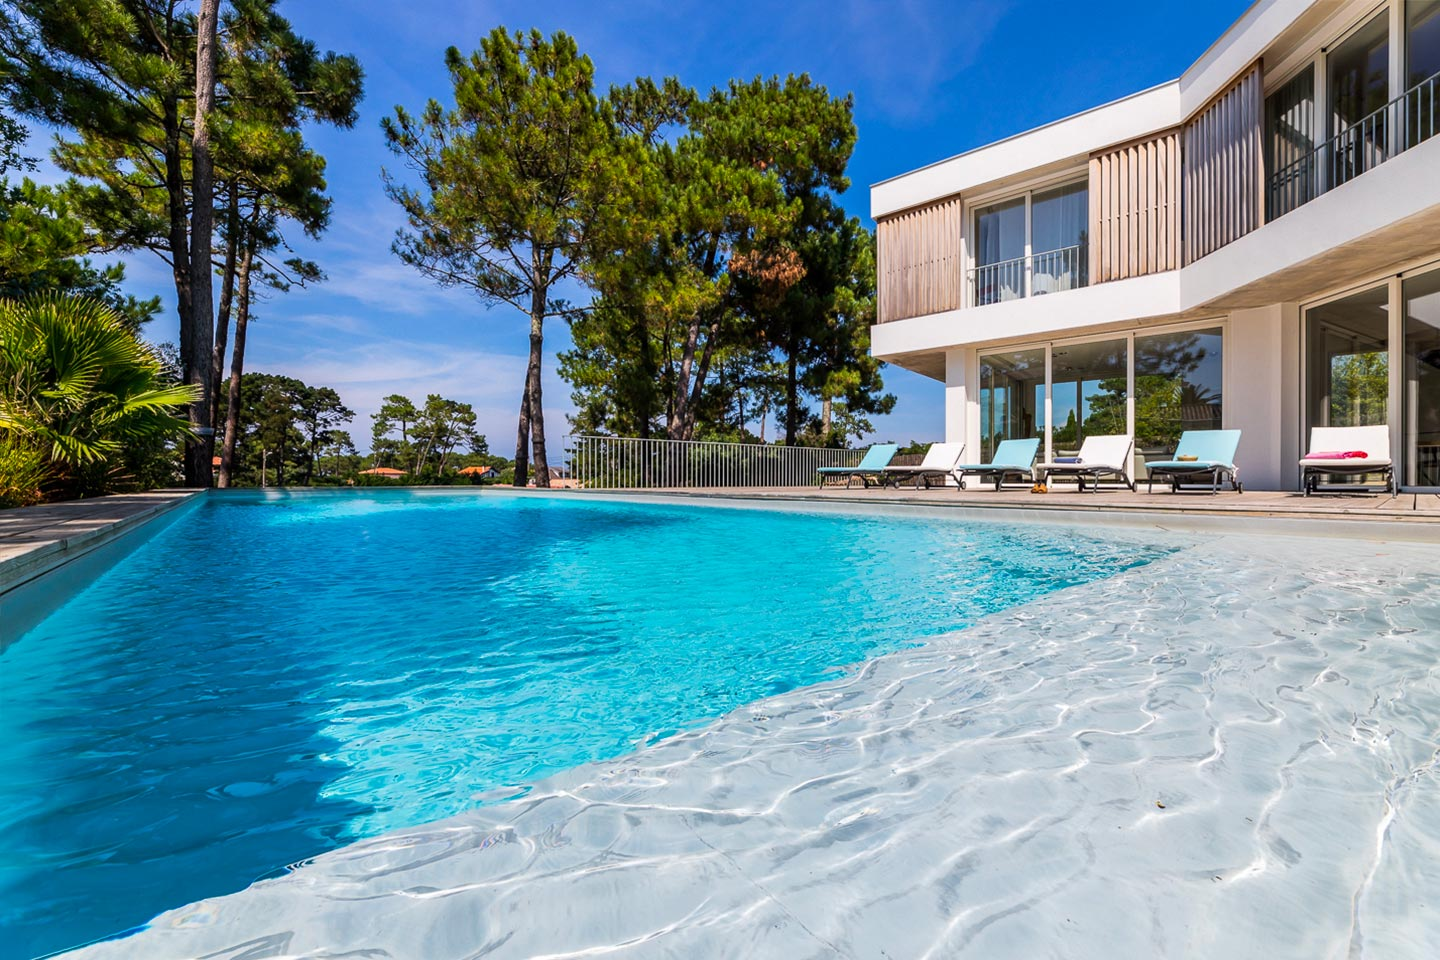 ARENA Stunning villa rental in Anglet with swimming pool